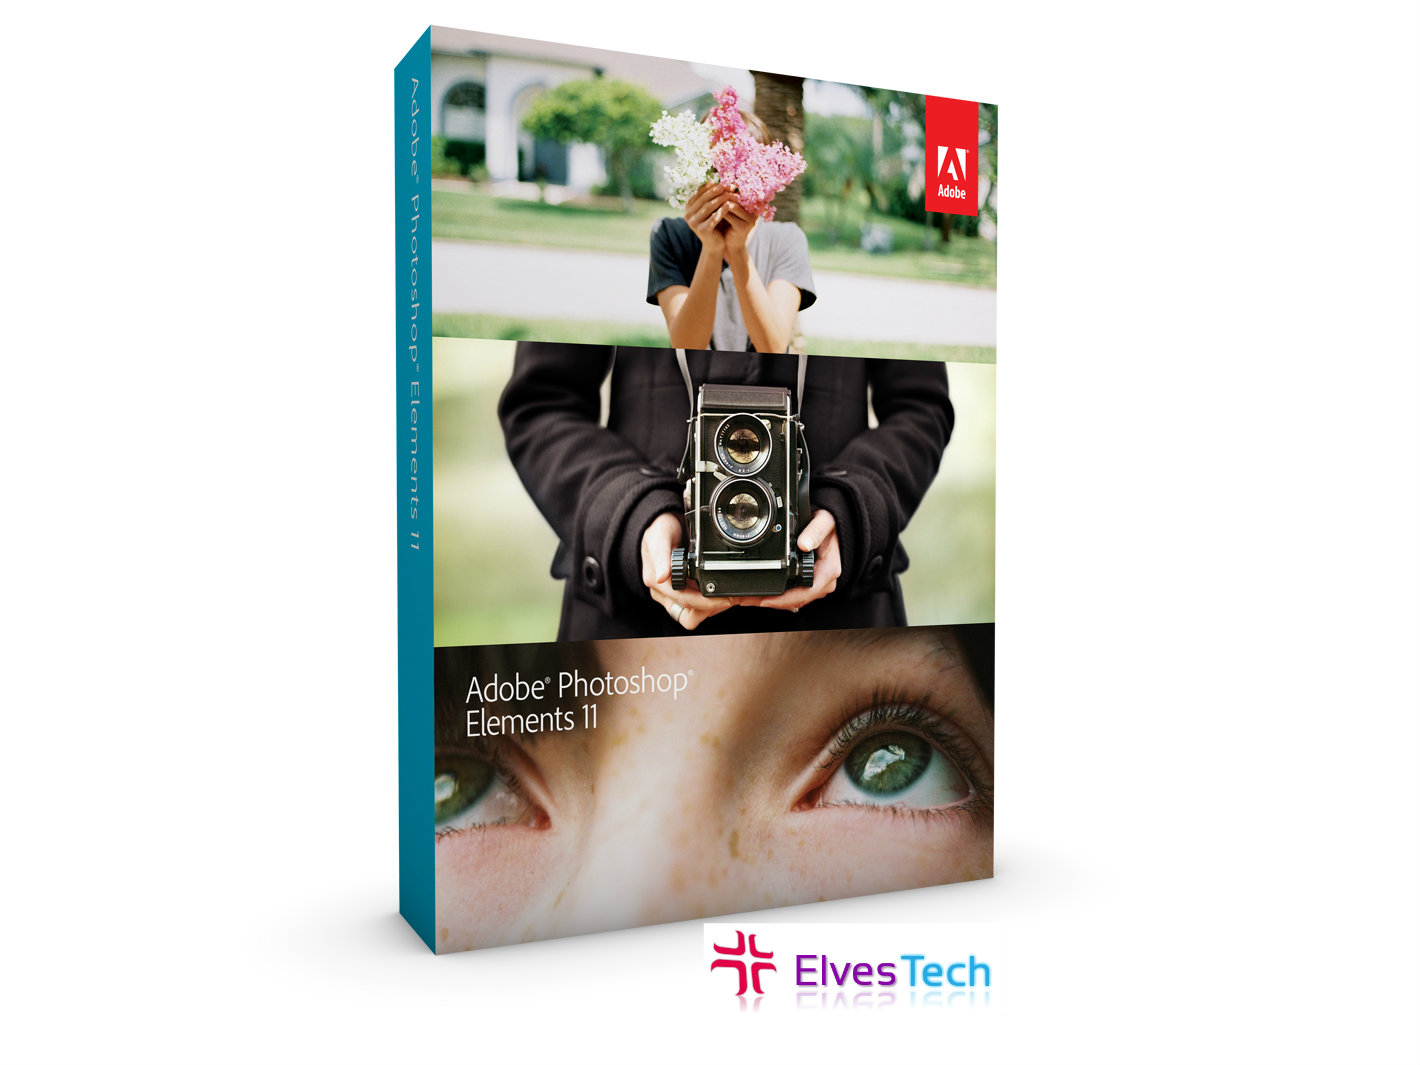 Adobe Photoshop Elements 11 Full Version 2013 updated Download